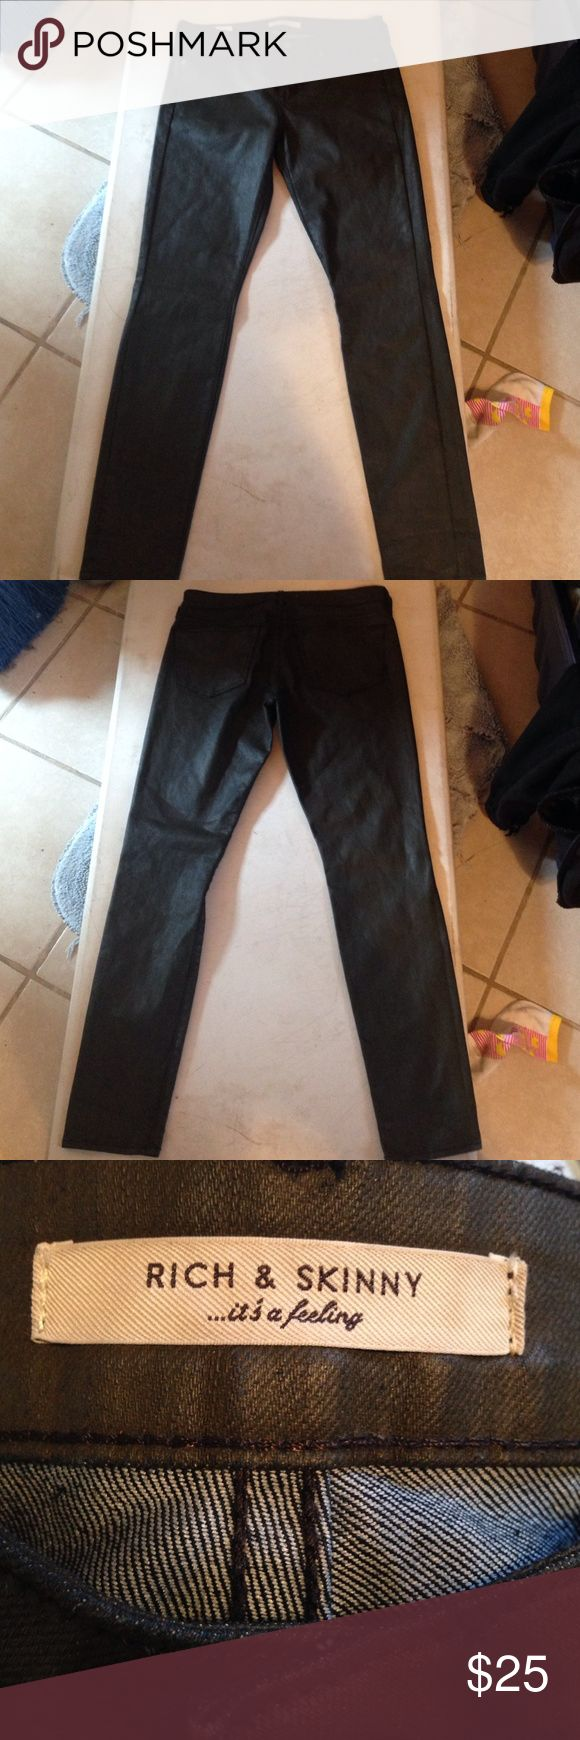 RICH & SKINNY FAUX LEATHER BROWN JEANS SZ 28 RICH & SKINNY FAIX LEATHER SKINNY BROWN JEANS SZ 28 Rich & Skinny Jeans Skinny